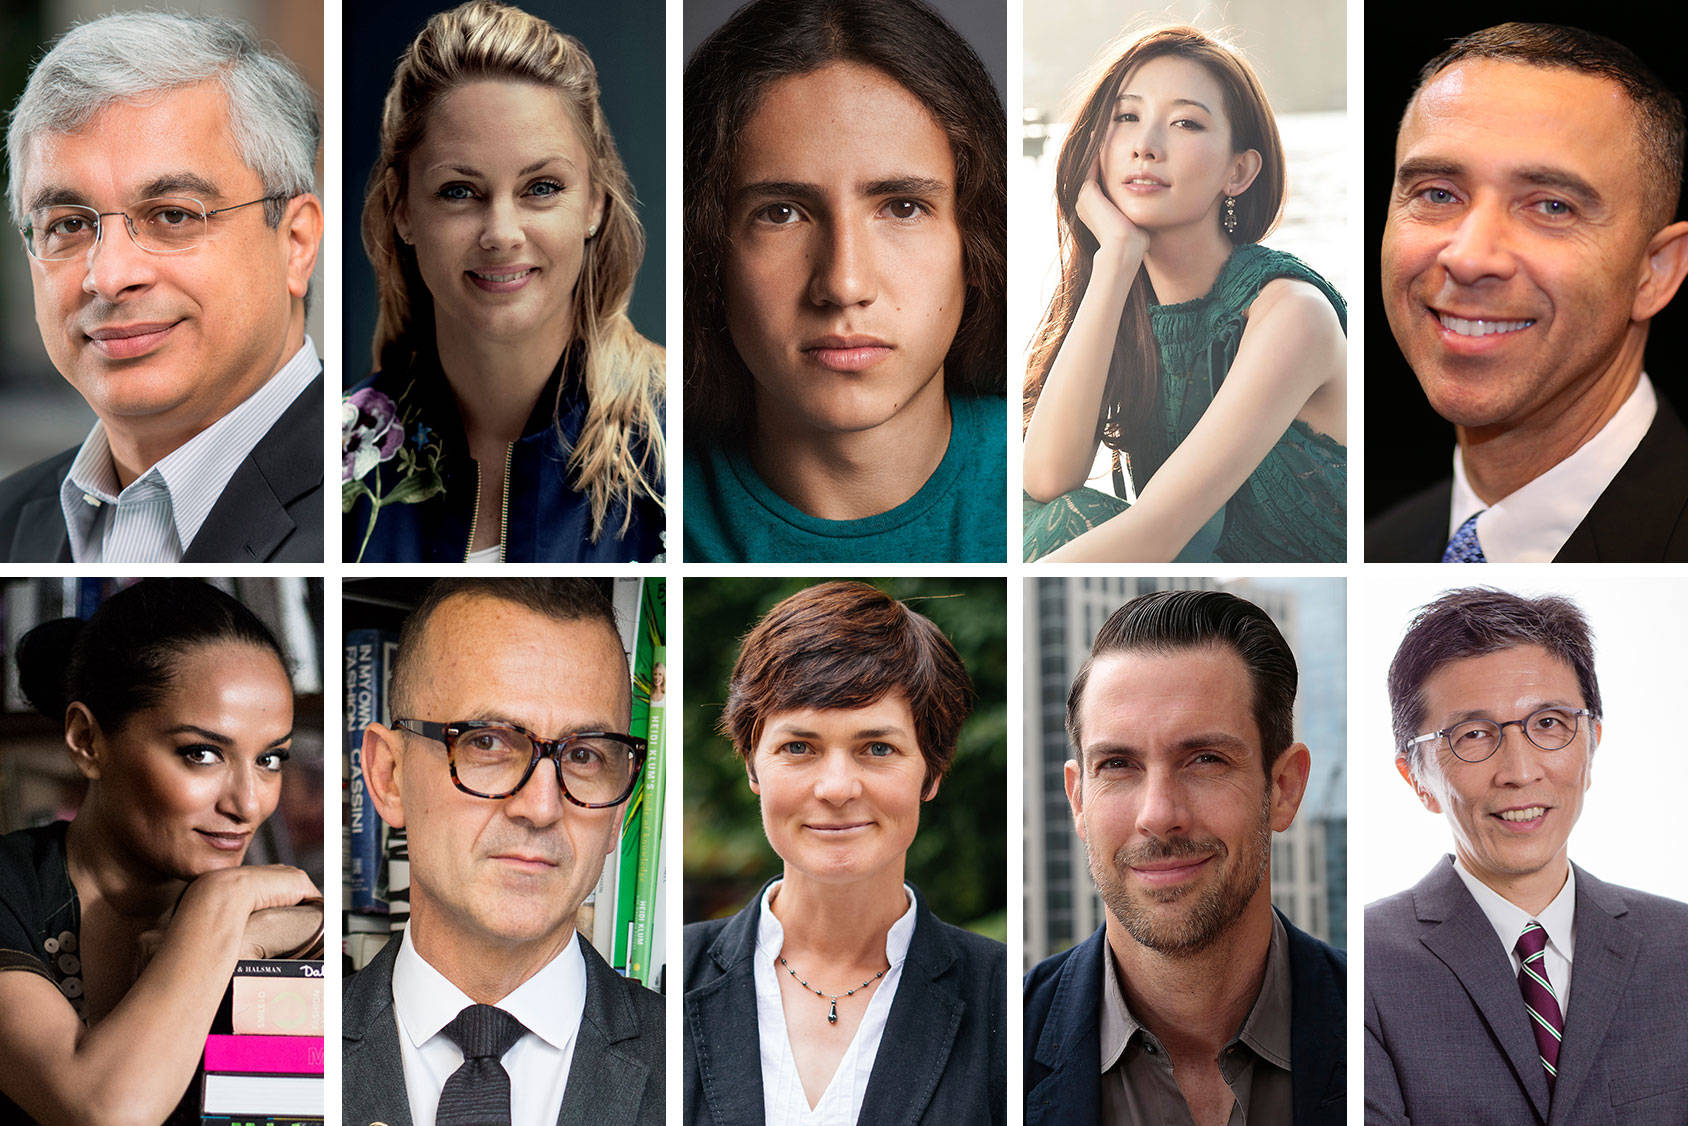 A panel of ten experts in fashion, environment and technology will select the five winning innovations. From top left: Vikram Widge, Sophia Bendz, Xiuhtezcatl Martinez, Chiling Lin, David Roberts, Bandana Tewari, Steven Kolb, Ellen MacArthur, Lewis Perkins and Edwin Keh.